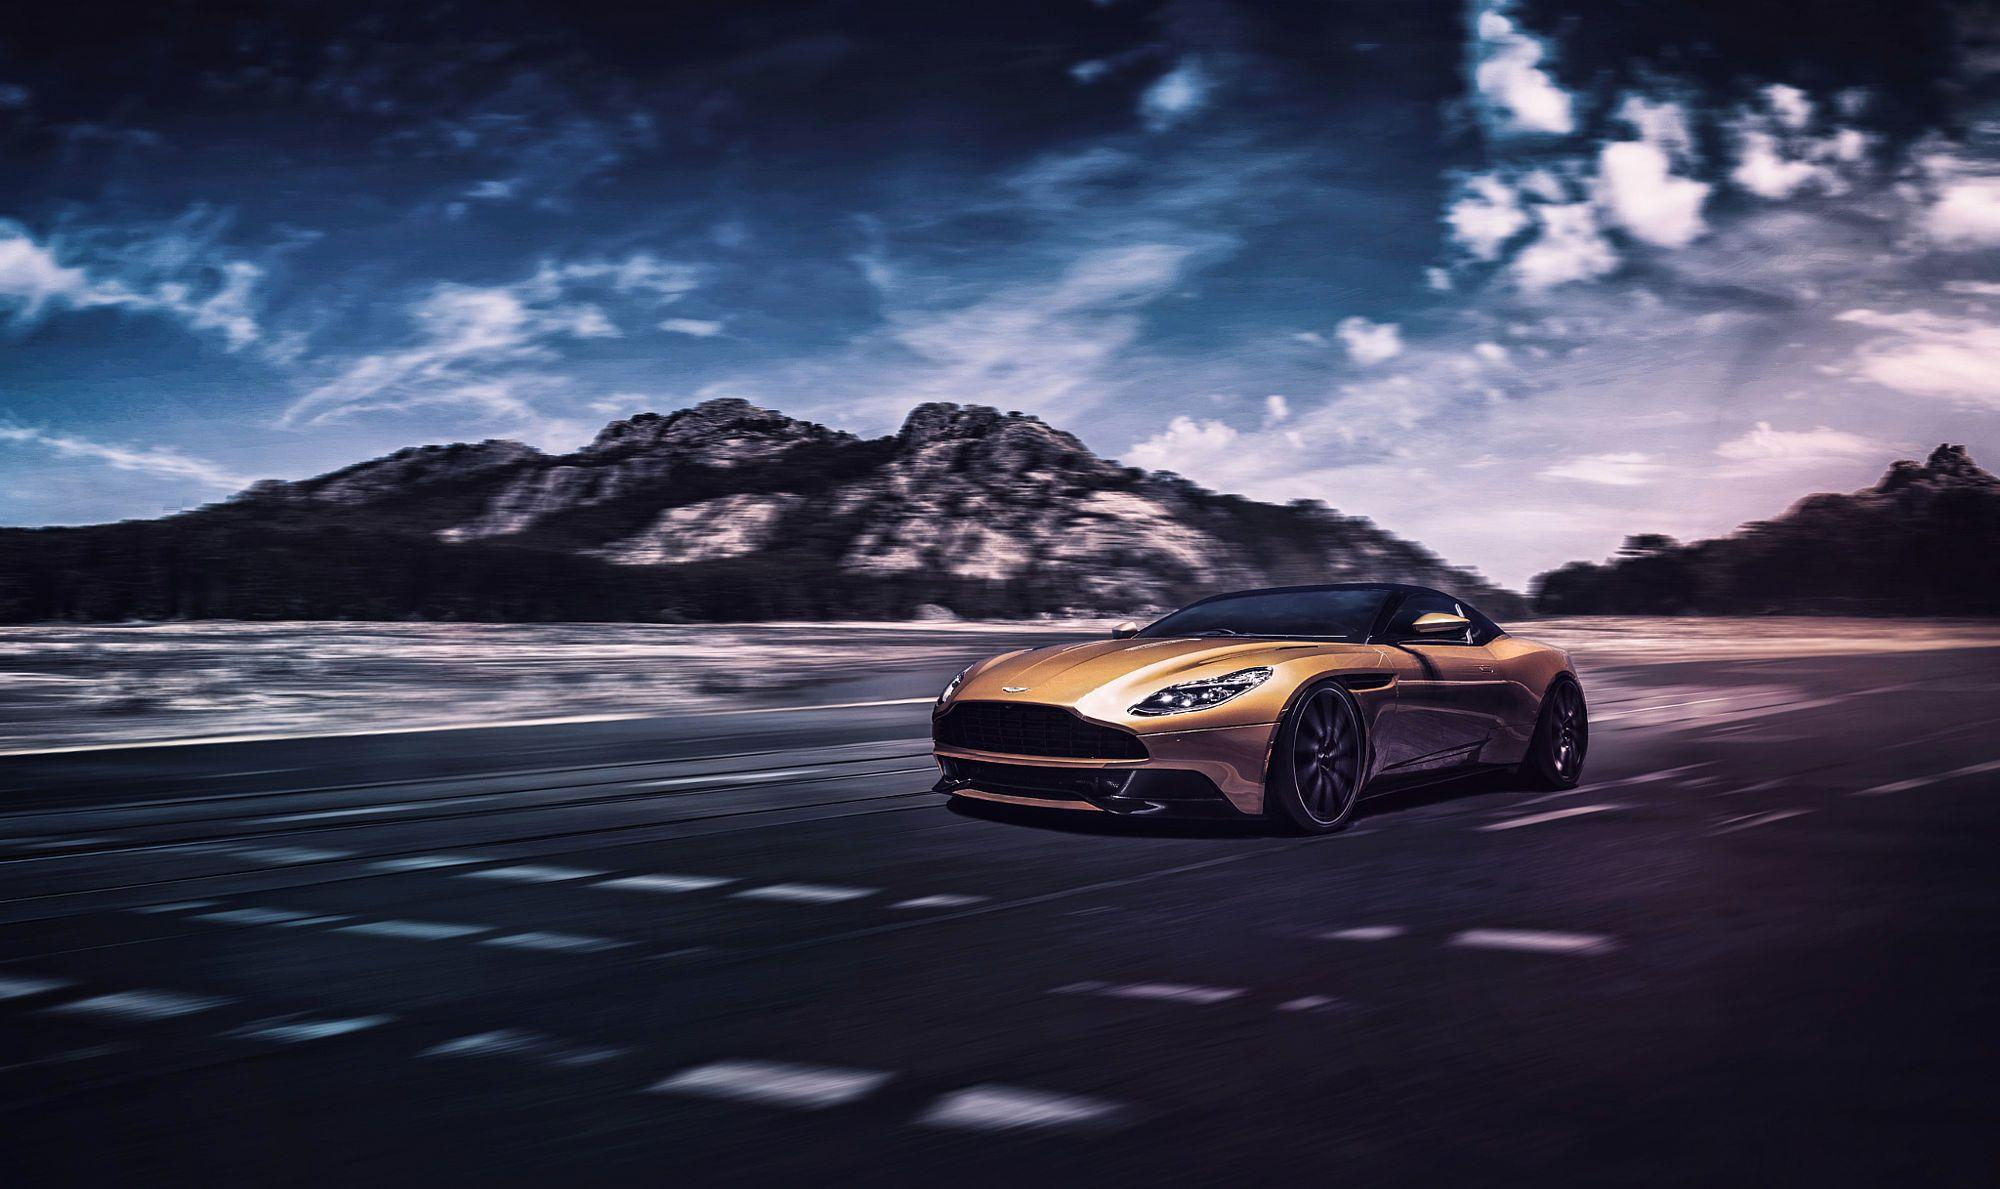 16 Aston Martin DB11 HD Wallpapers | Backgrounds - Wallpaper Abyss